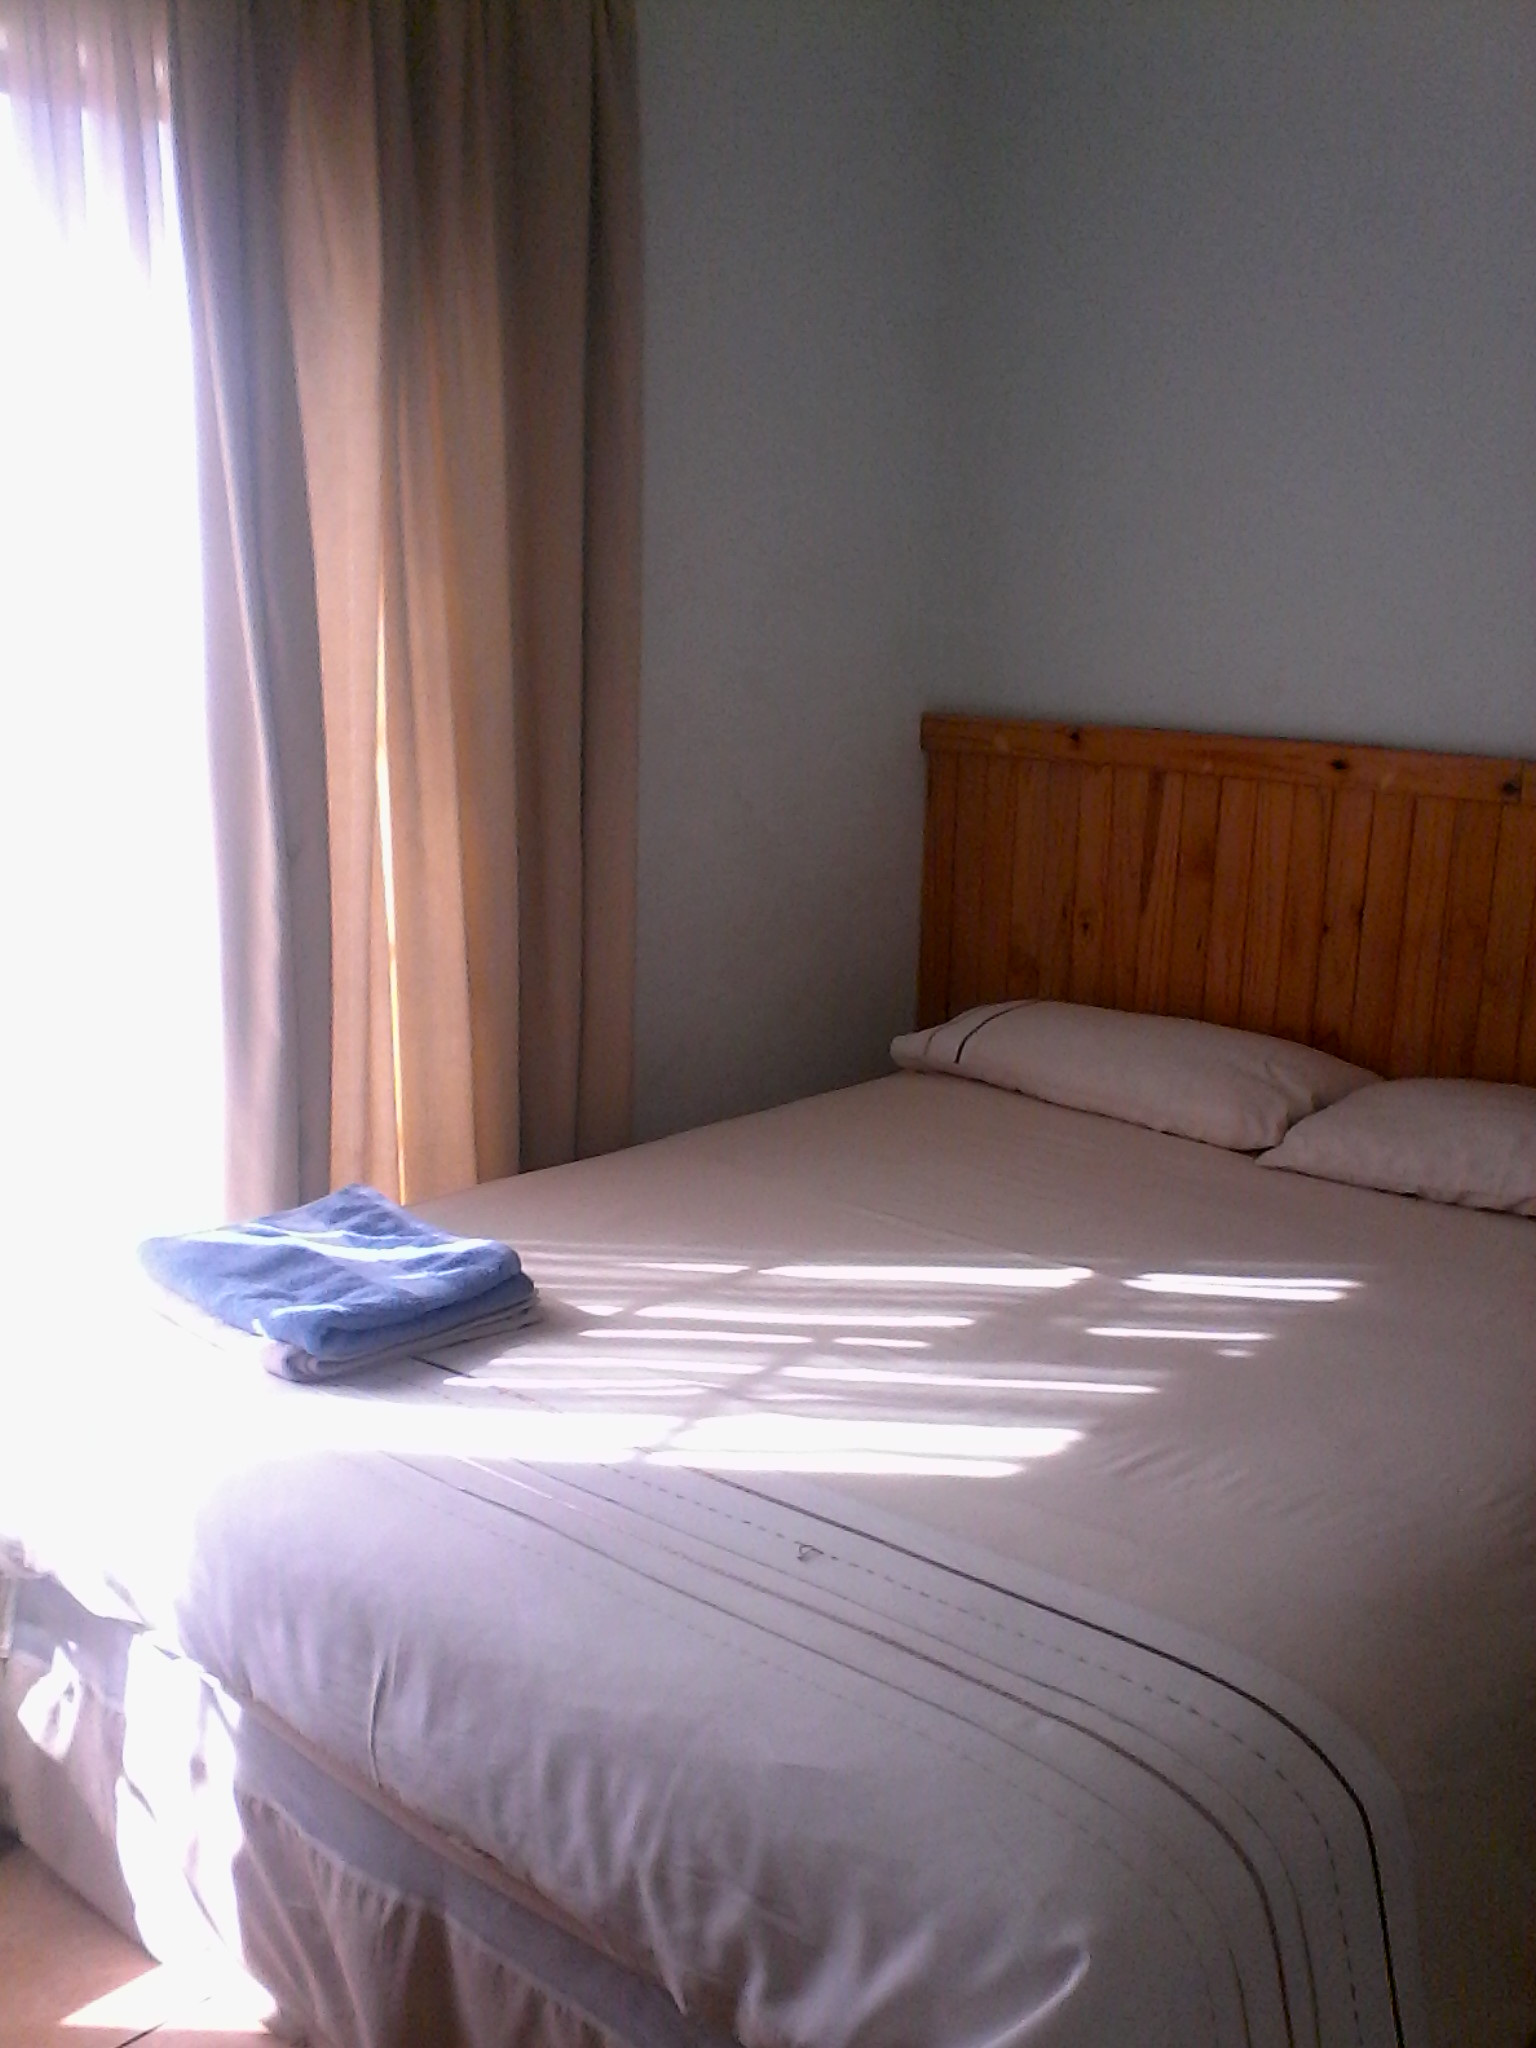 A FURNISHED ROOM IS AVAILABLE FOR A SINGLE PERSON AT SINOVILLE NEAR WONDERBOOM  AIRPORT